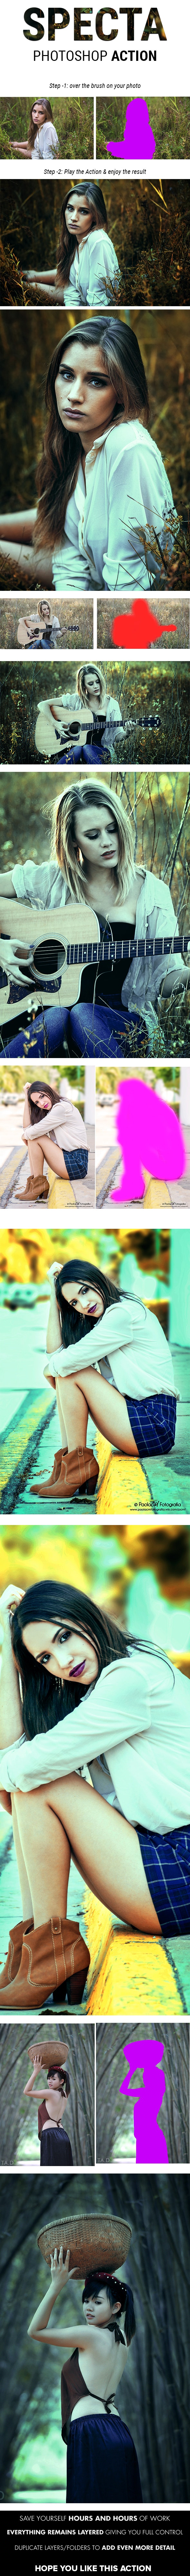 Specta - Evening Color Effect Photoshop Action - Photo Effects Actions